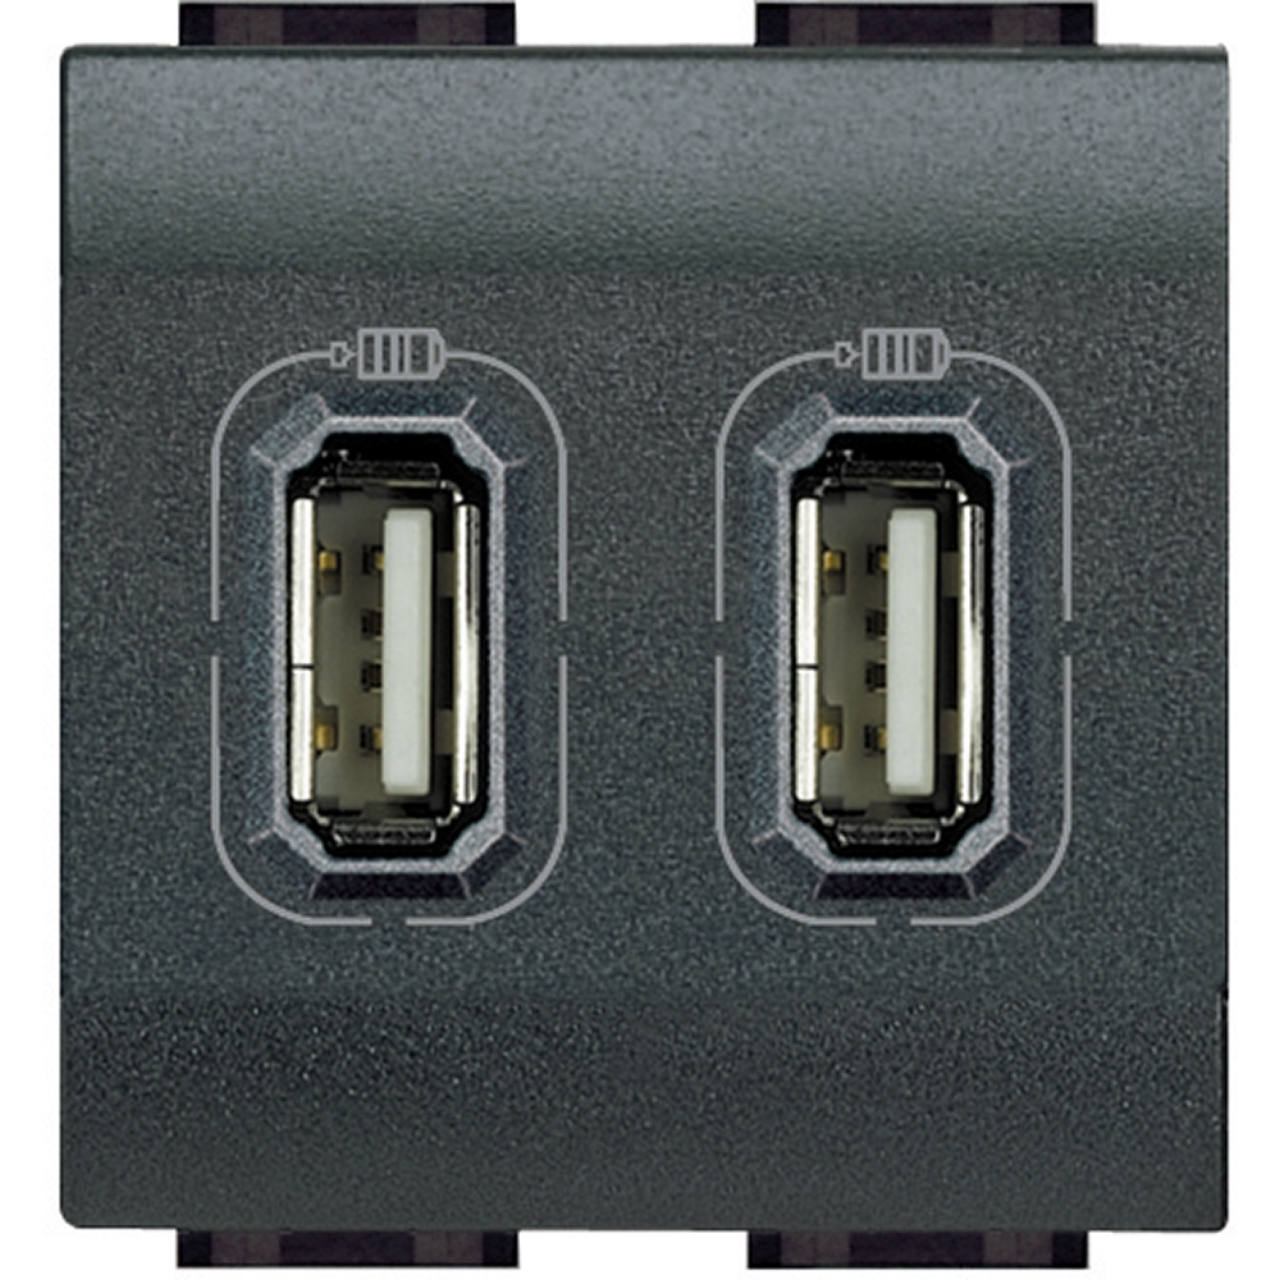 Chargeur usb 230v 5v 2 ports 2 modules bticino living anthra for Bticino living